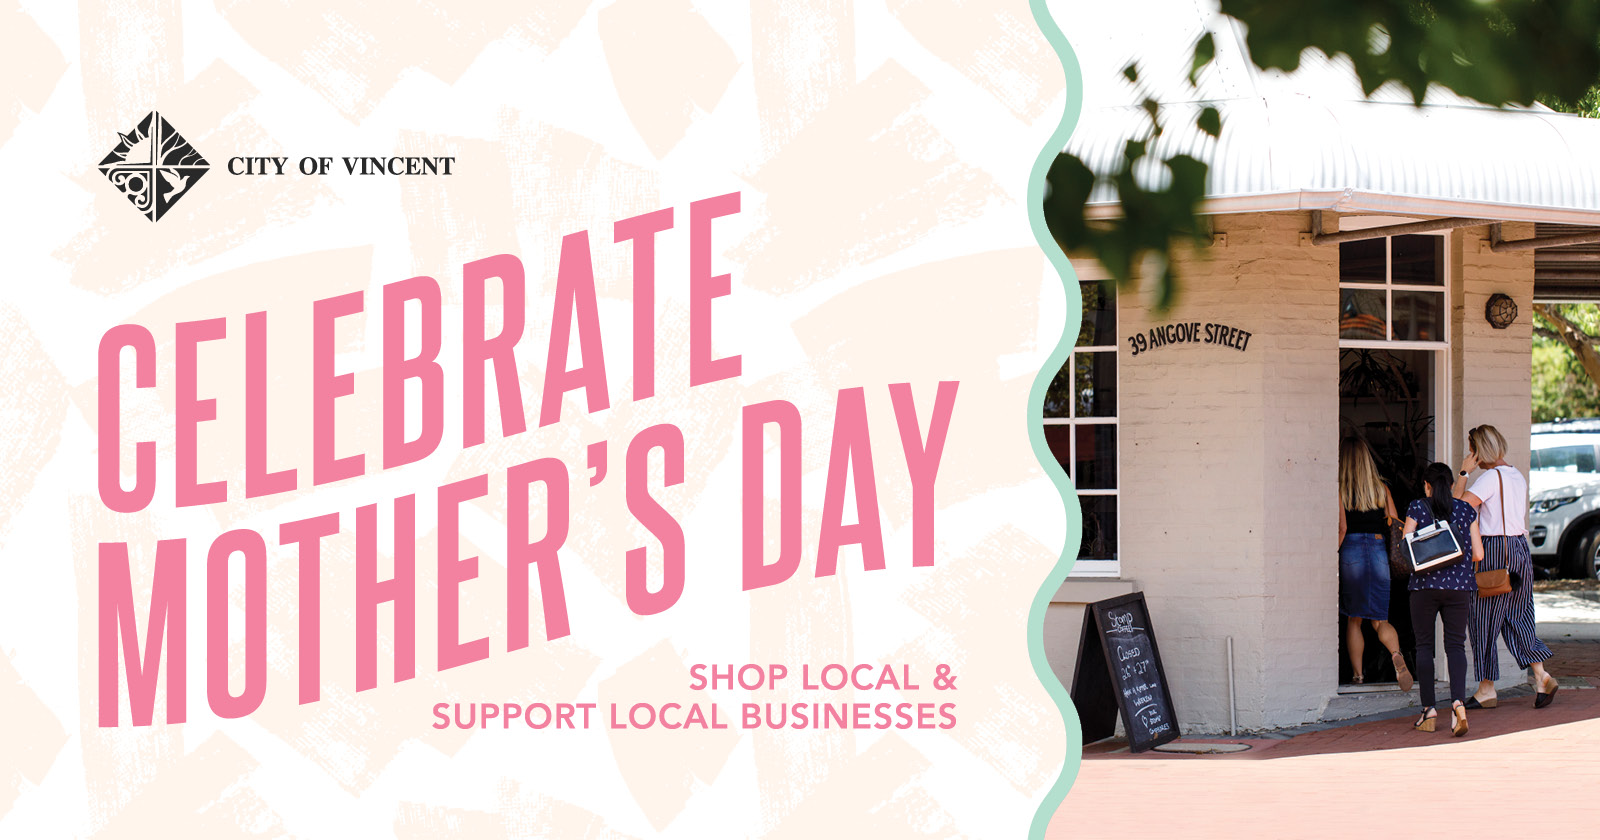 Shop local in Vincent this Mother's Day